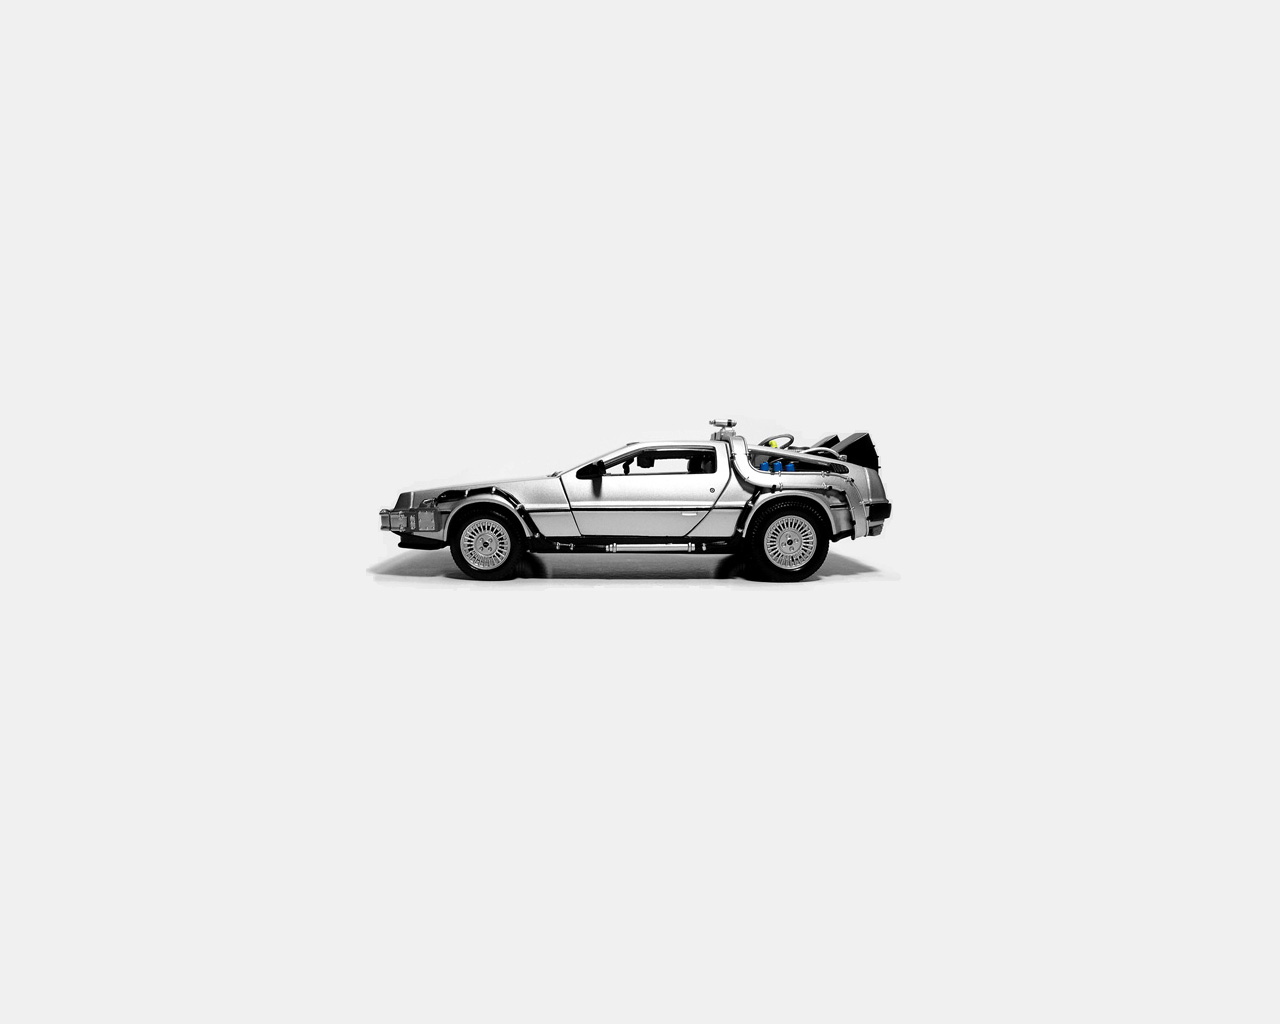 General 1280x1024 Back to the Future Back to the Future II (Movies) Back to the Future III (Movie) car Marty McFly Dr. Emmett Brown minimalism white DeLorean